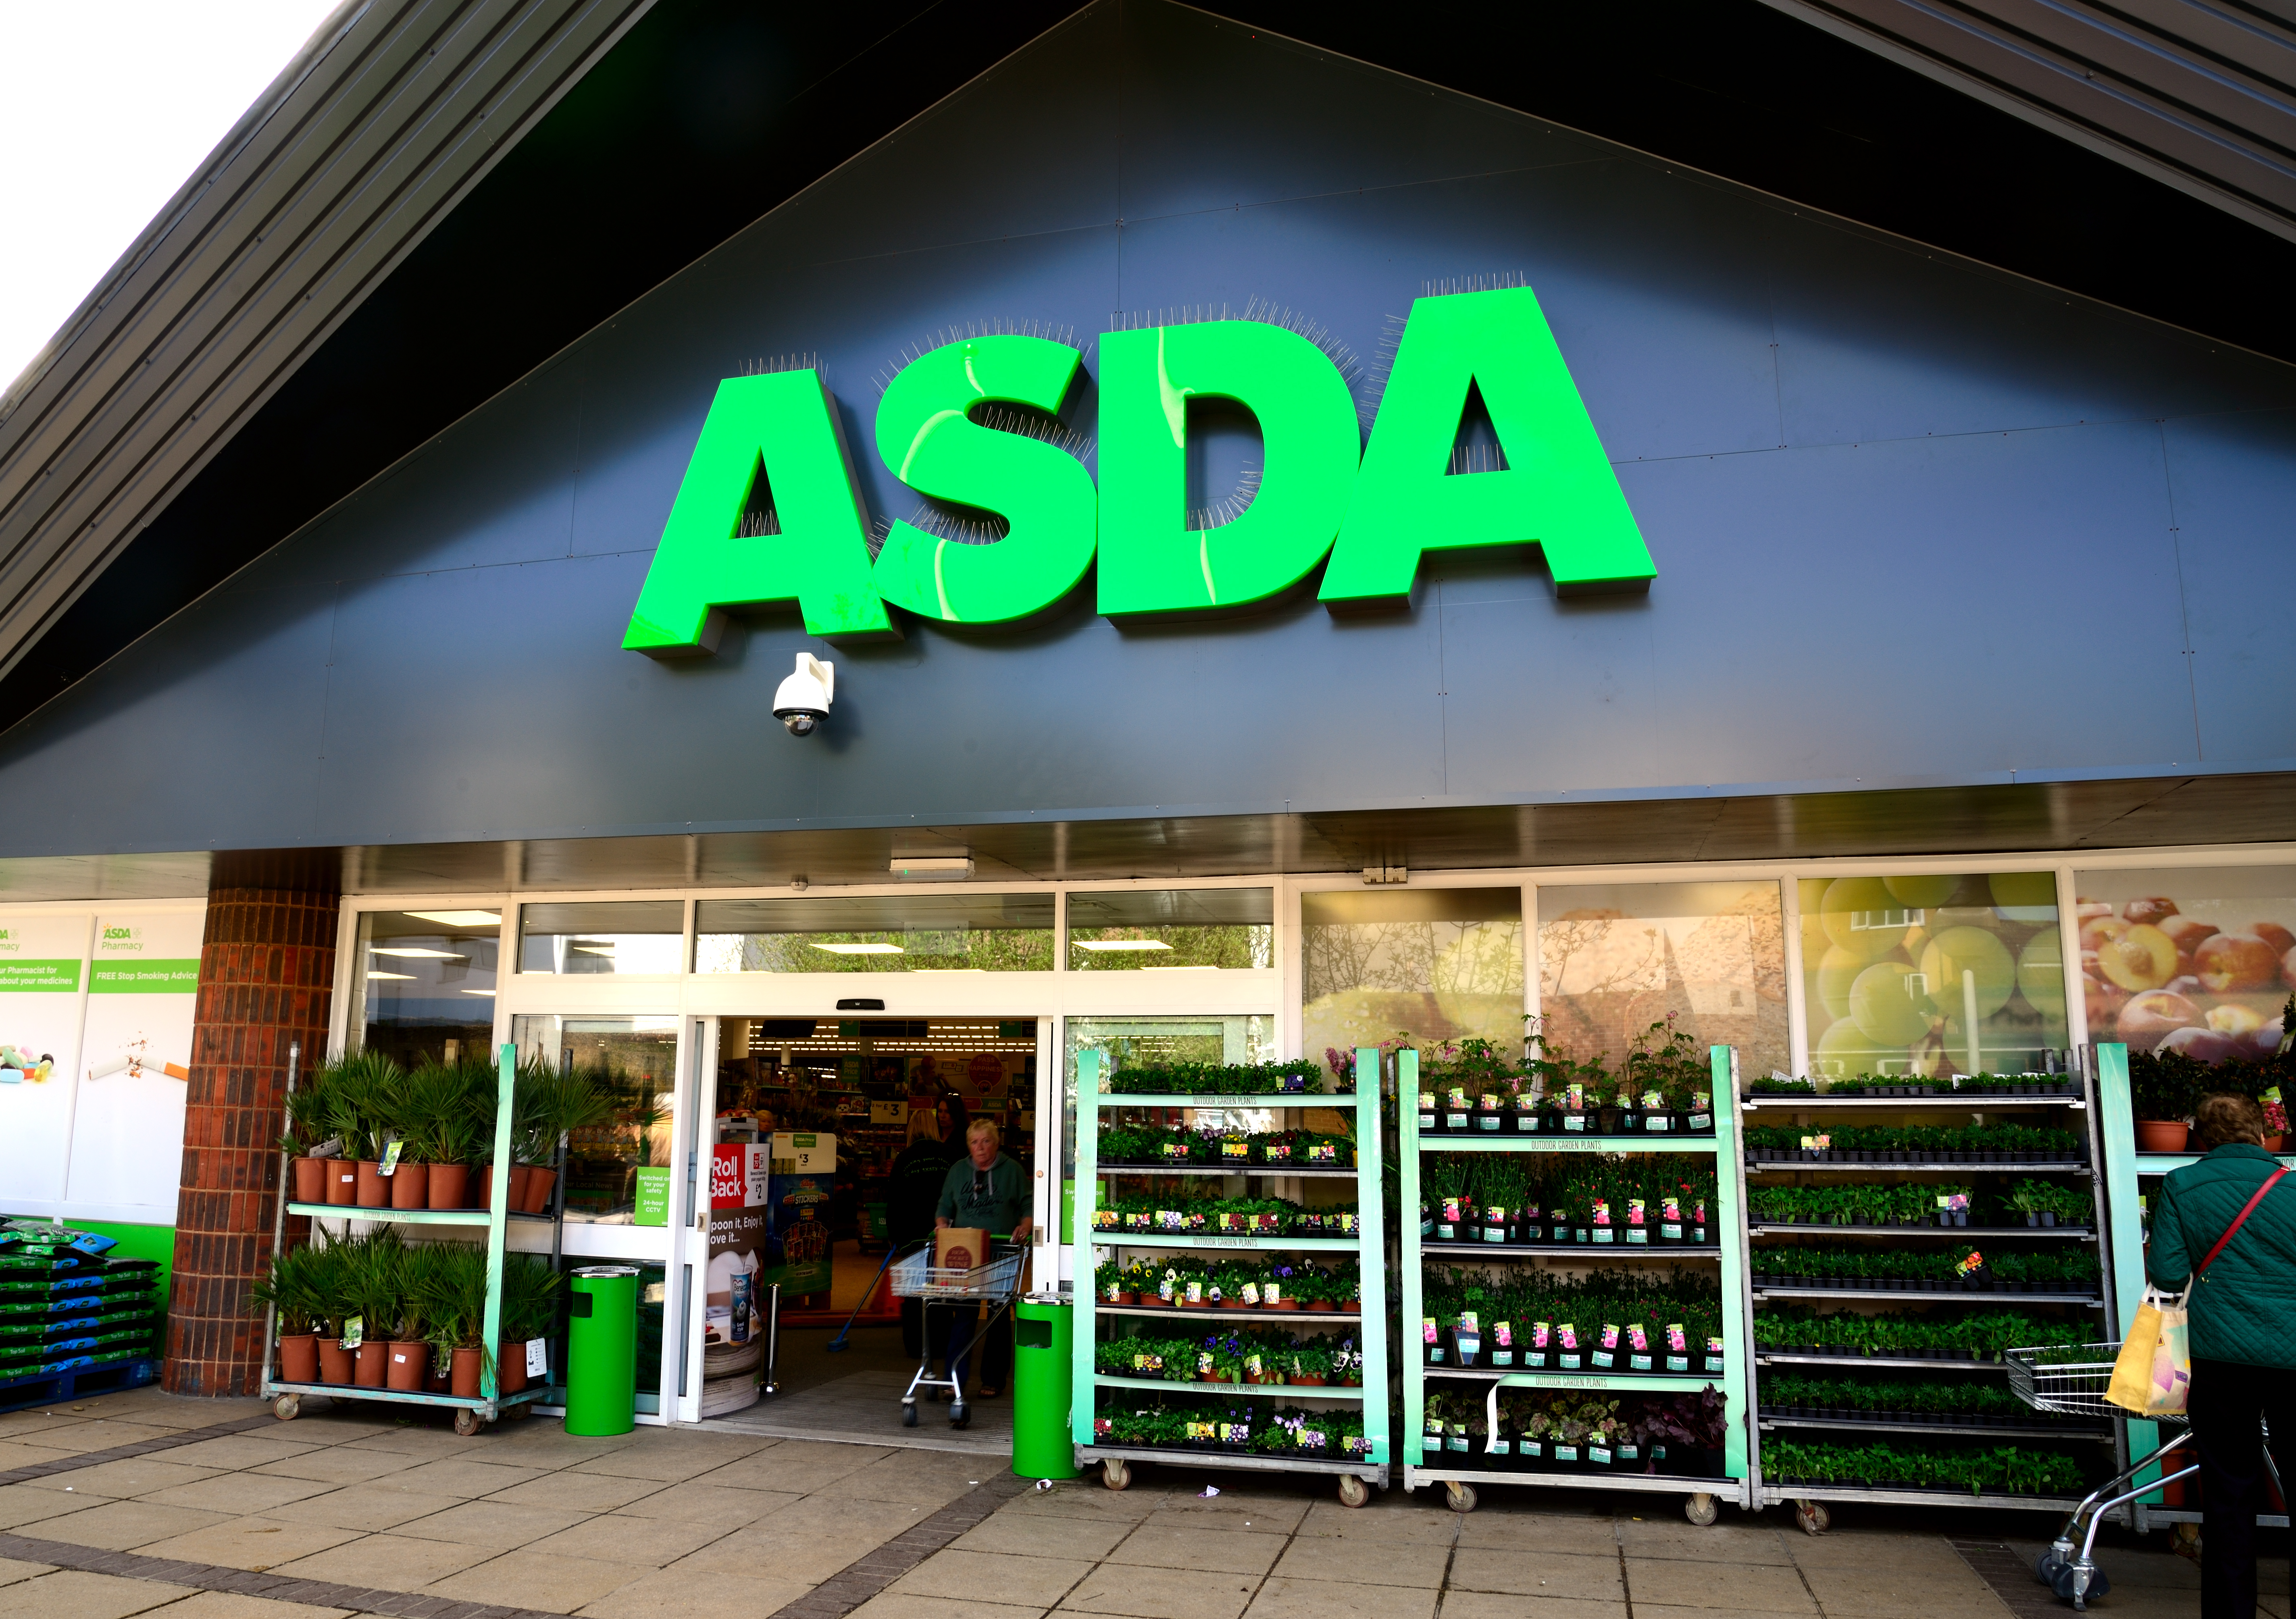 Waterlooville, UK - May 2, 2018: Asda Stores Ltd. trading as Asda, is a British supermarket retailer. The logo is prominent above the glass fronted store-front.  Advertising, products and Sshoppers are all visible.